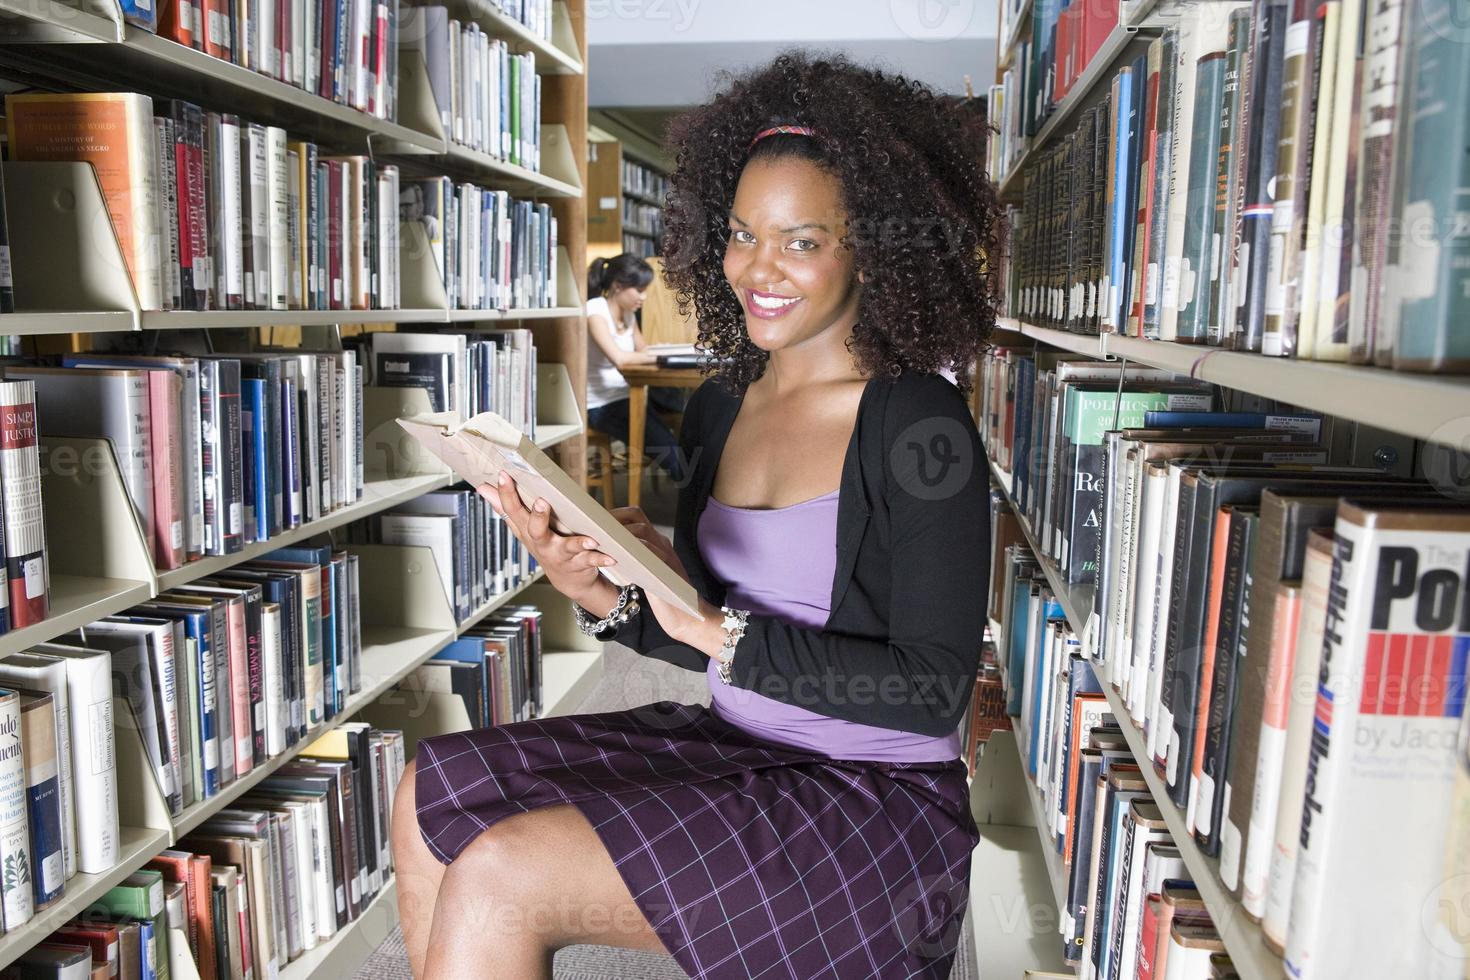 Female university student studying in library, portrait photo